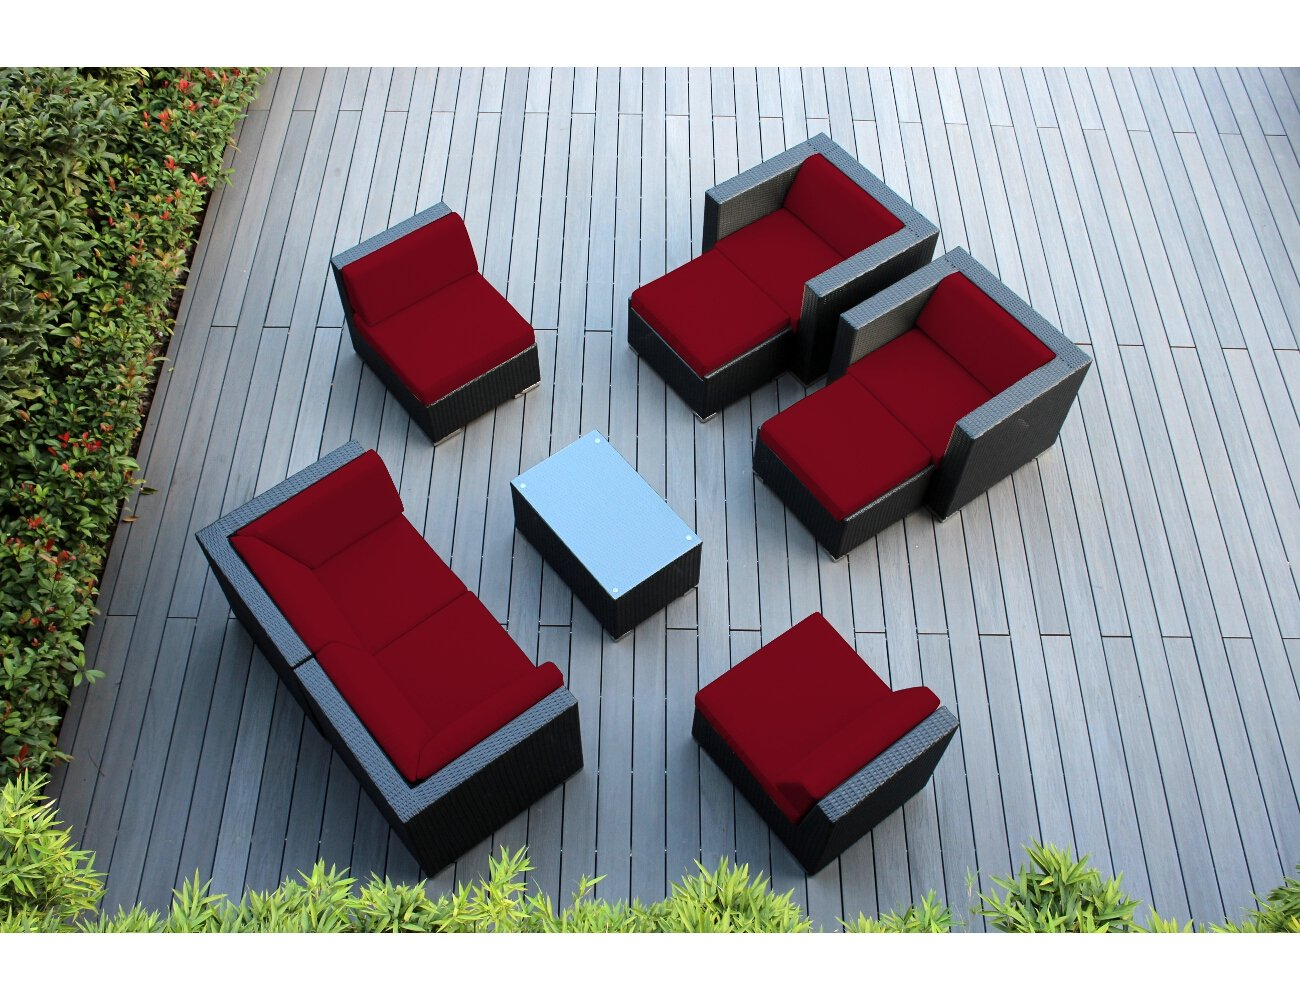 Outdoor wicker patio furniture - Amazon Com Ohana 20 Piece Outdoor Wicker Patio Furniture Sectional Dining And Chaise Lounge Set With Weather Resistant Cushions Red Pnc2005ared